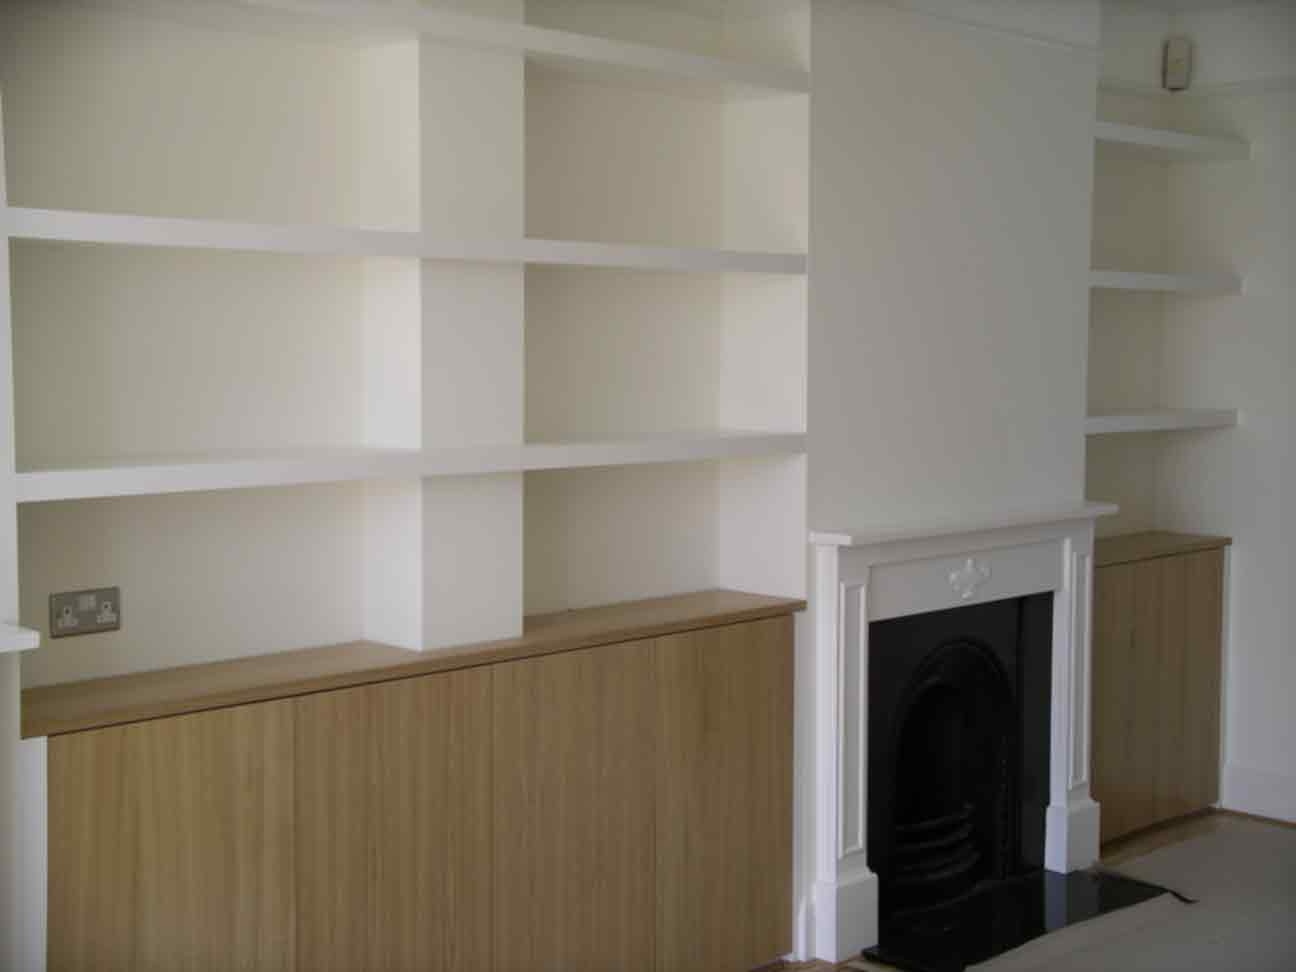 Amazing Build In Cupboards Designs With Built In Cupboards Intended For Built In Cupboard Shelving (#2 of 15)